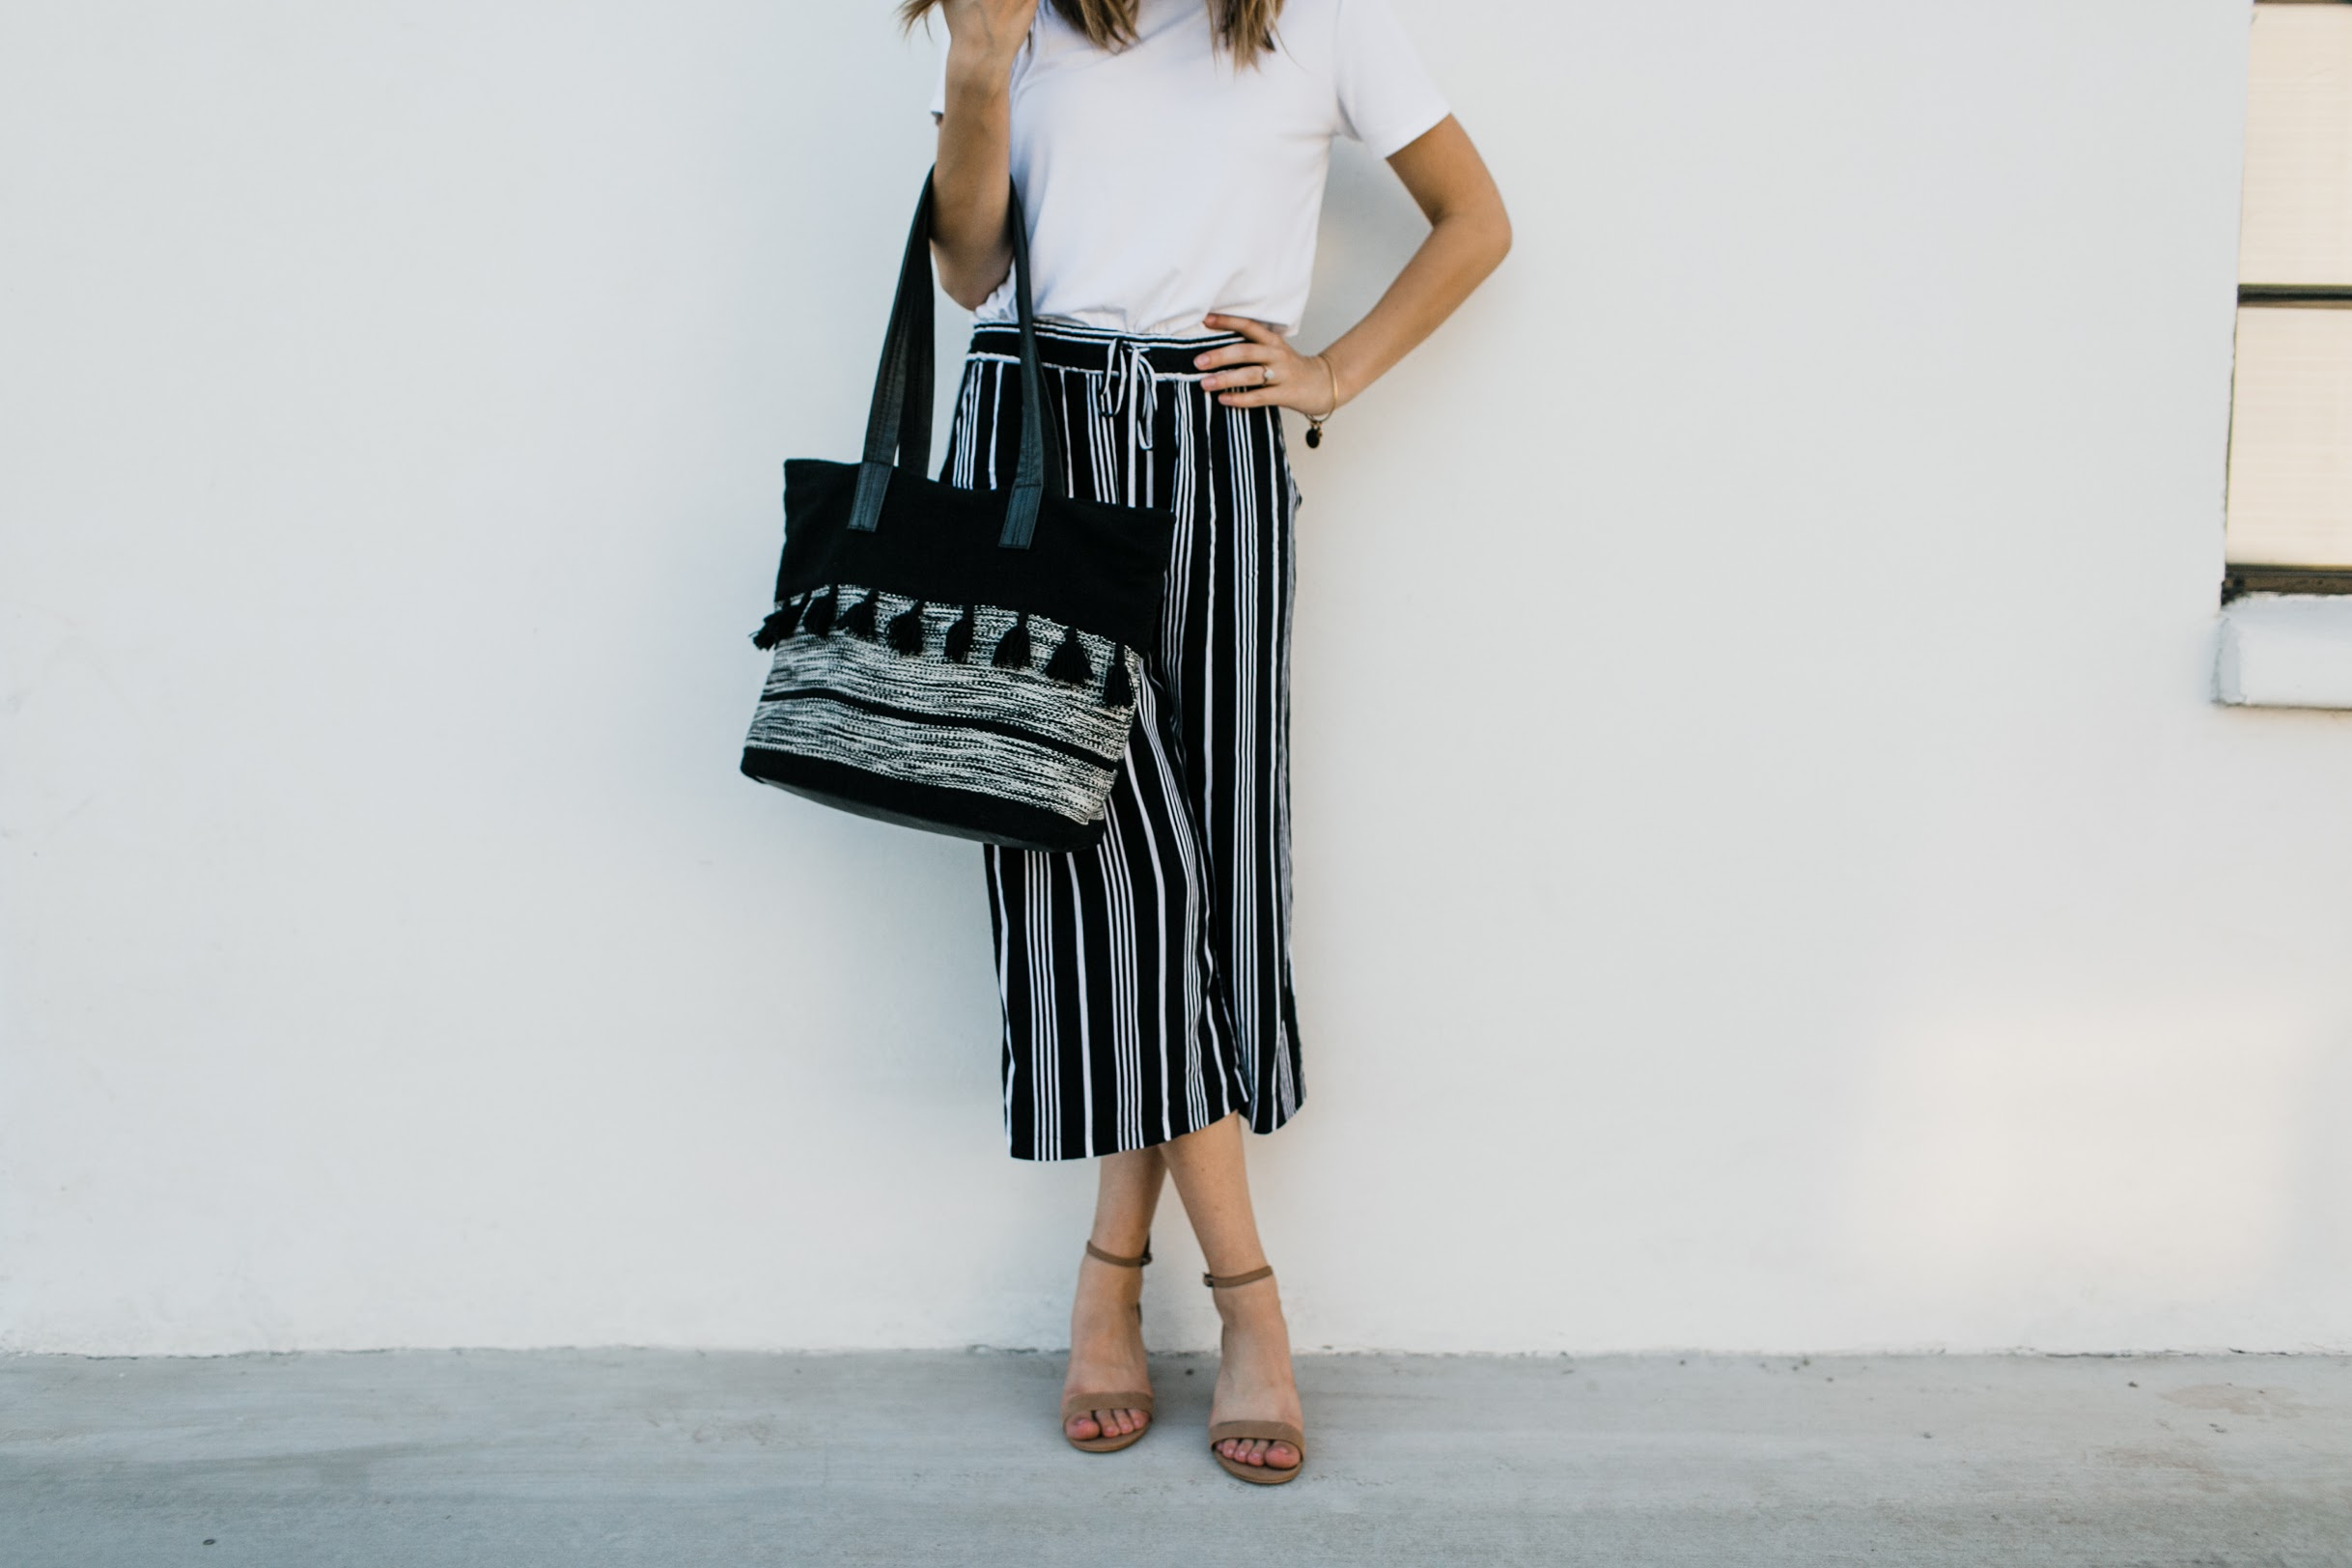 Encantado Embroidered Tassel Tote Bag - Genesis Fair Trade | $64 with code SHOPGENESISFAIR for 25% off